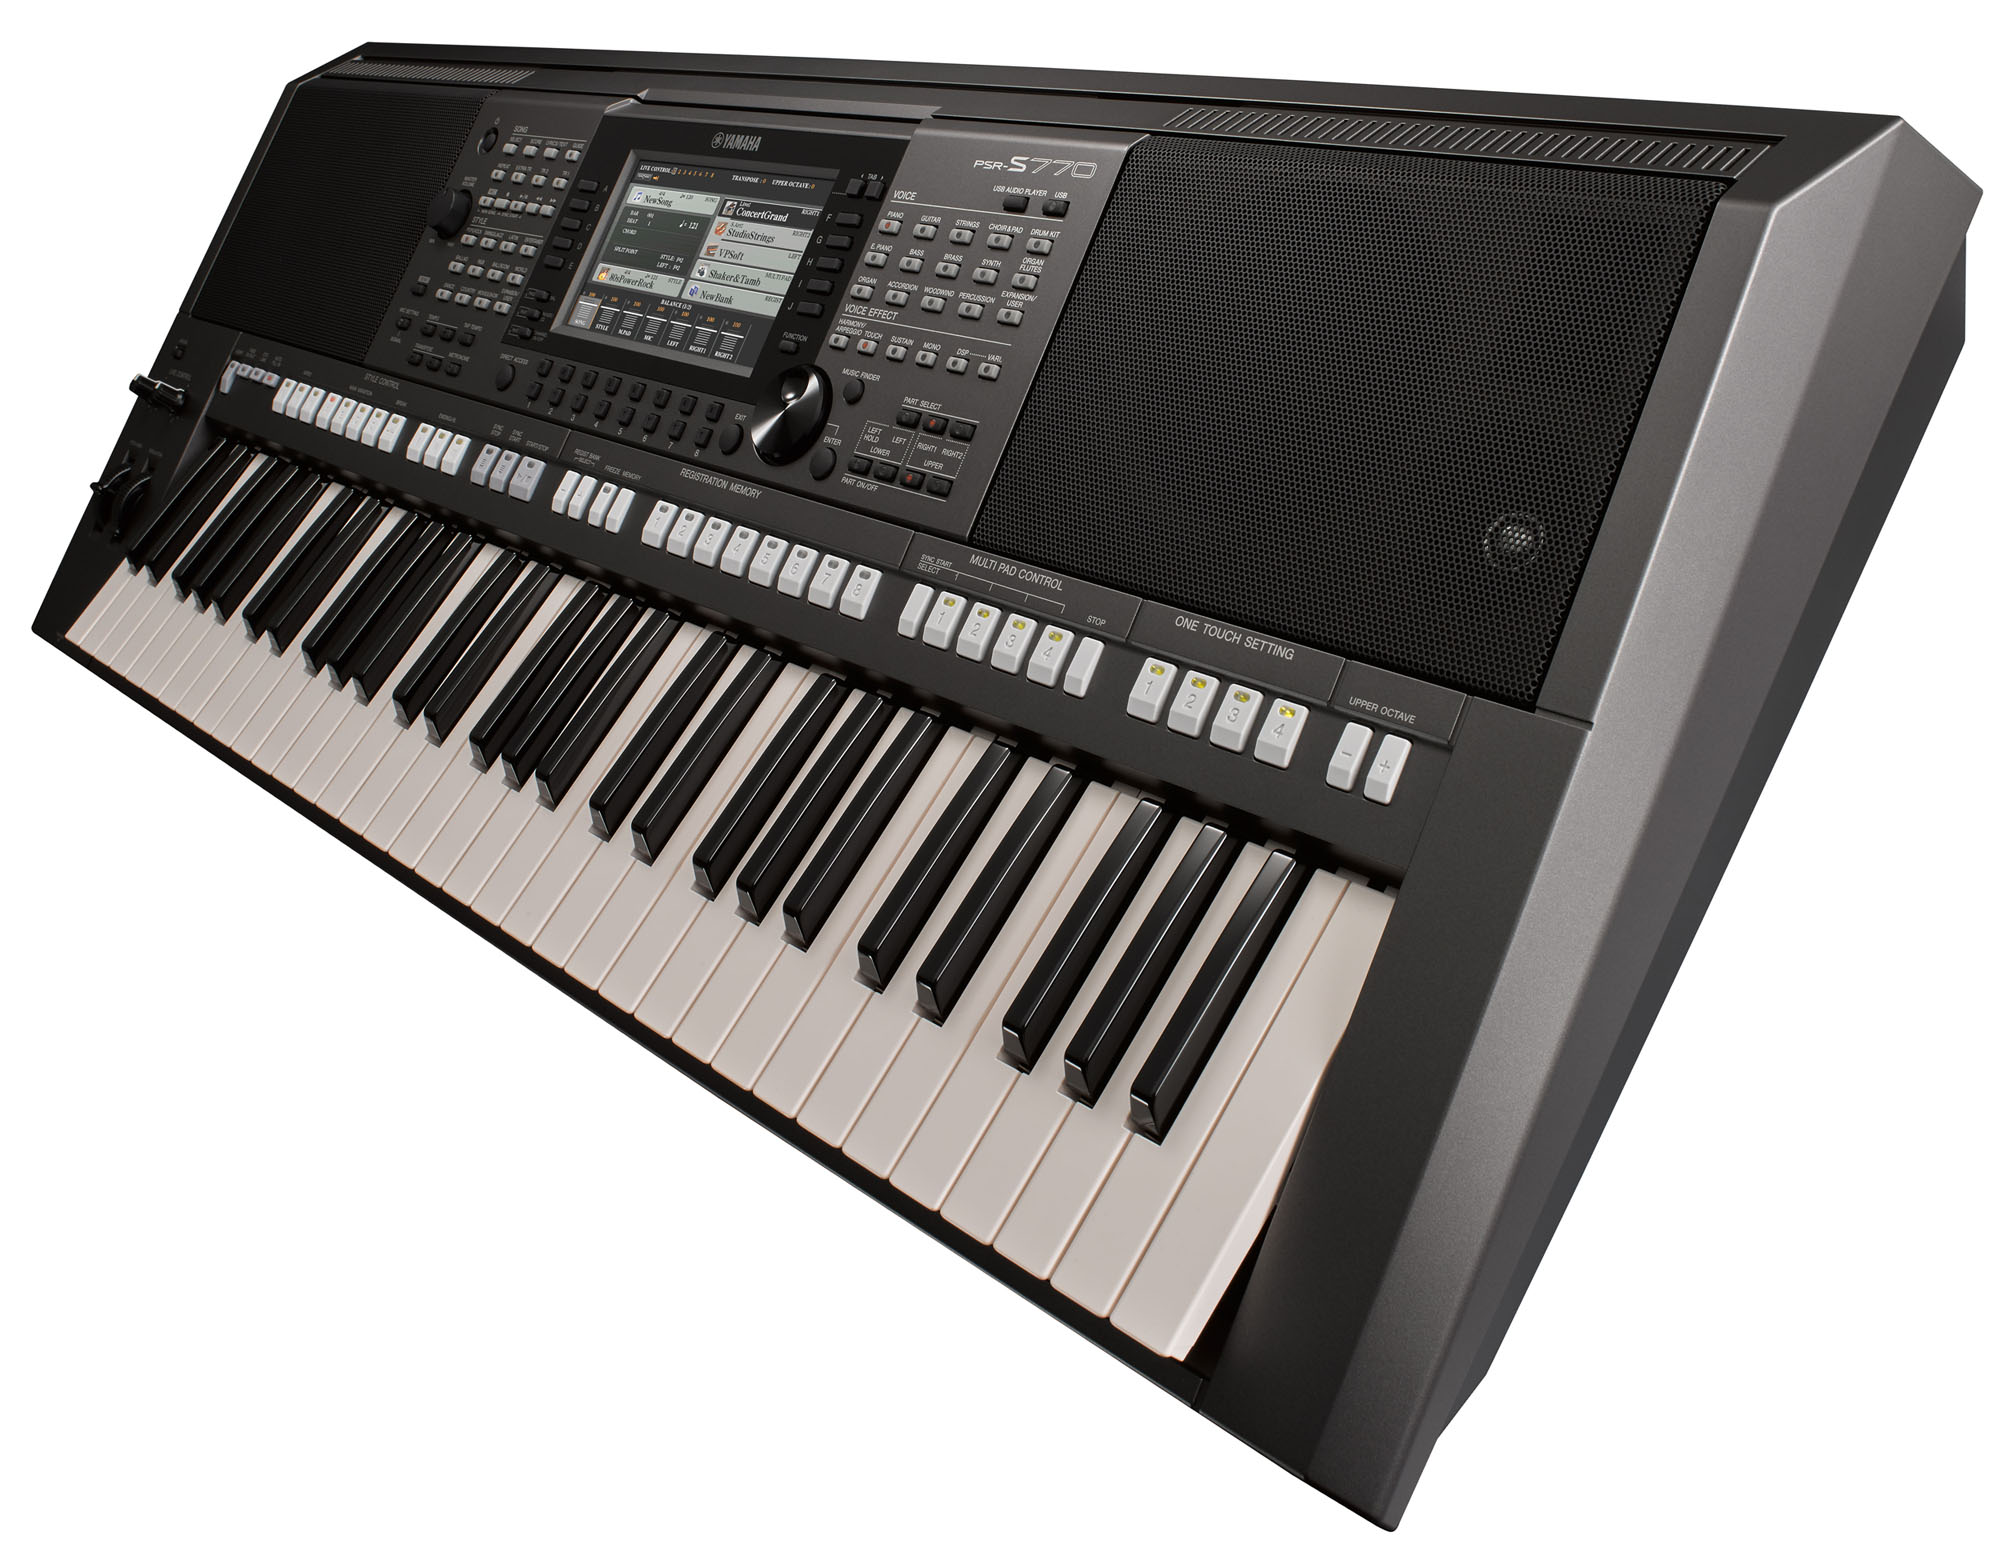 yamaha psr s770 arranger workstation keyboard yamaha music london. Black Bedroom Furniture Sets. Home Design Ideas